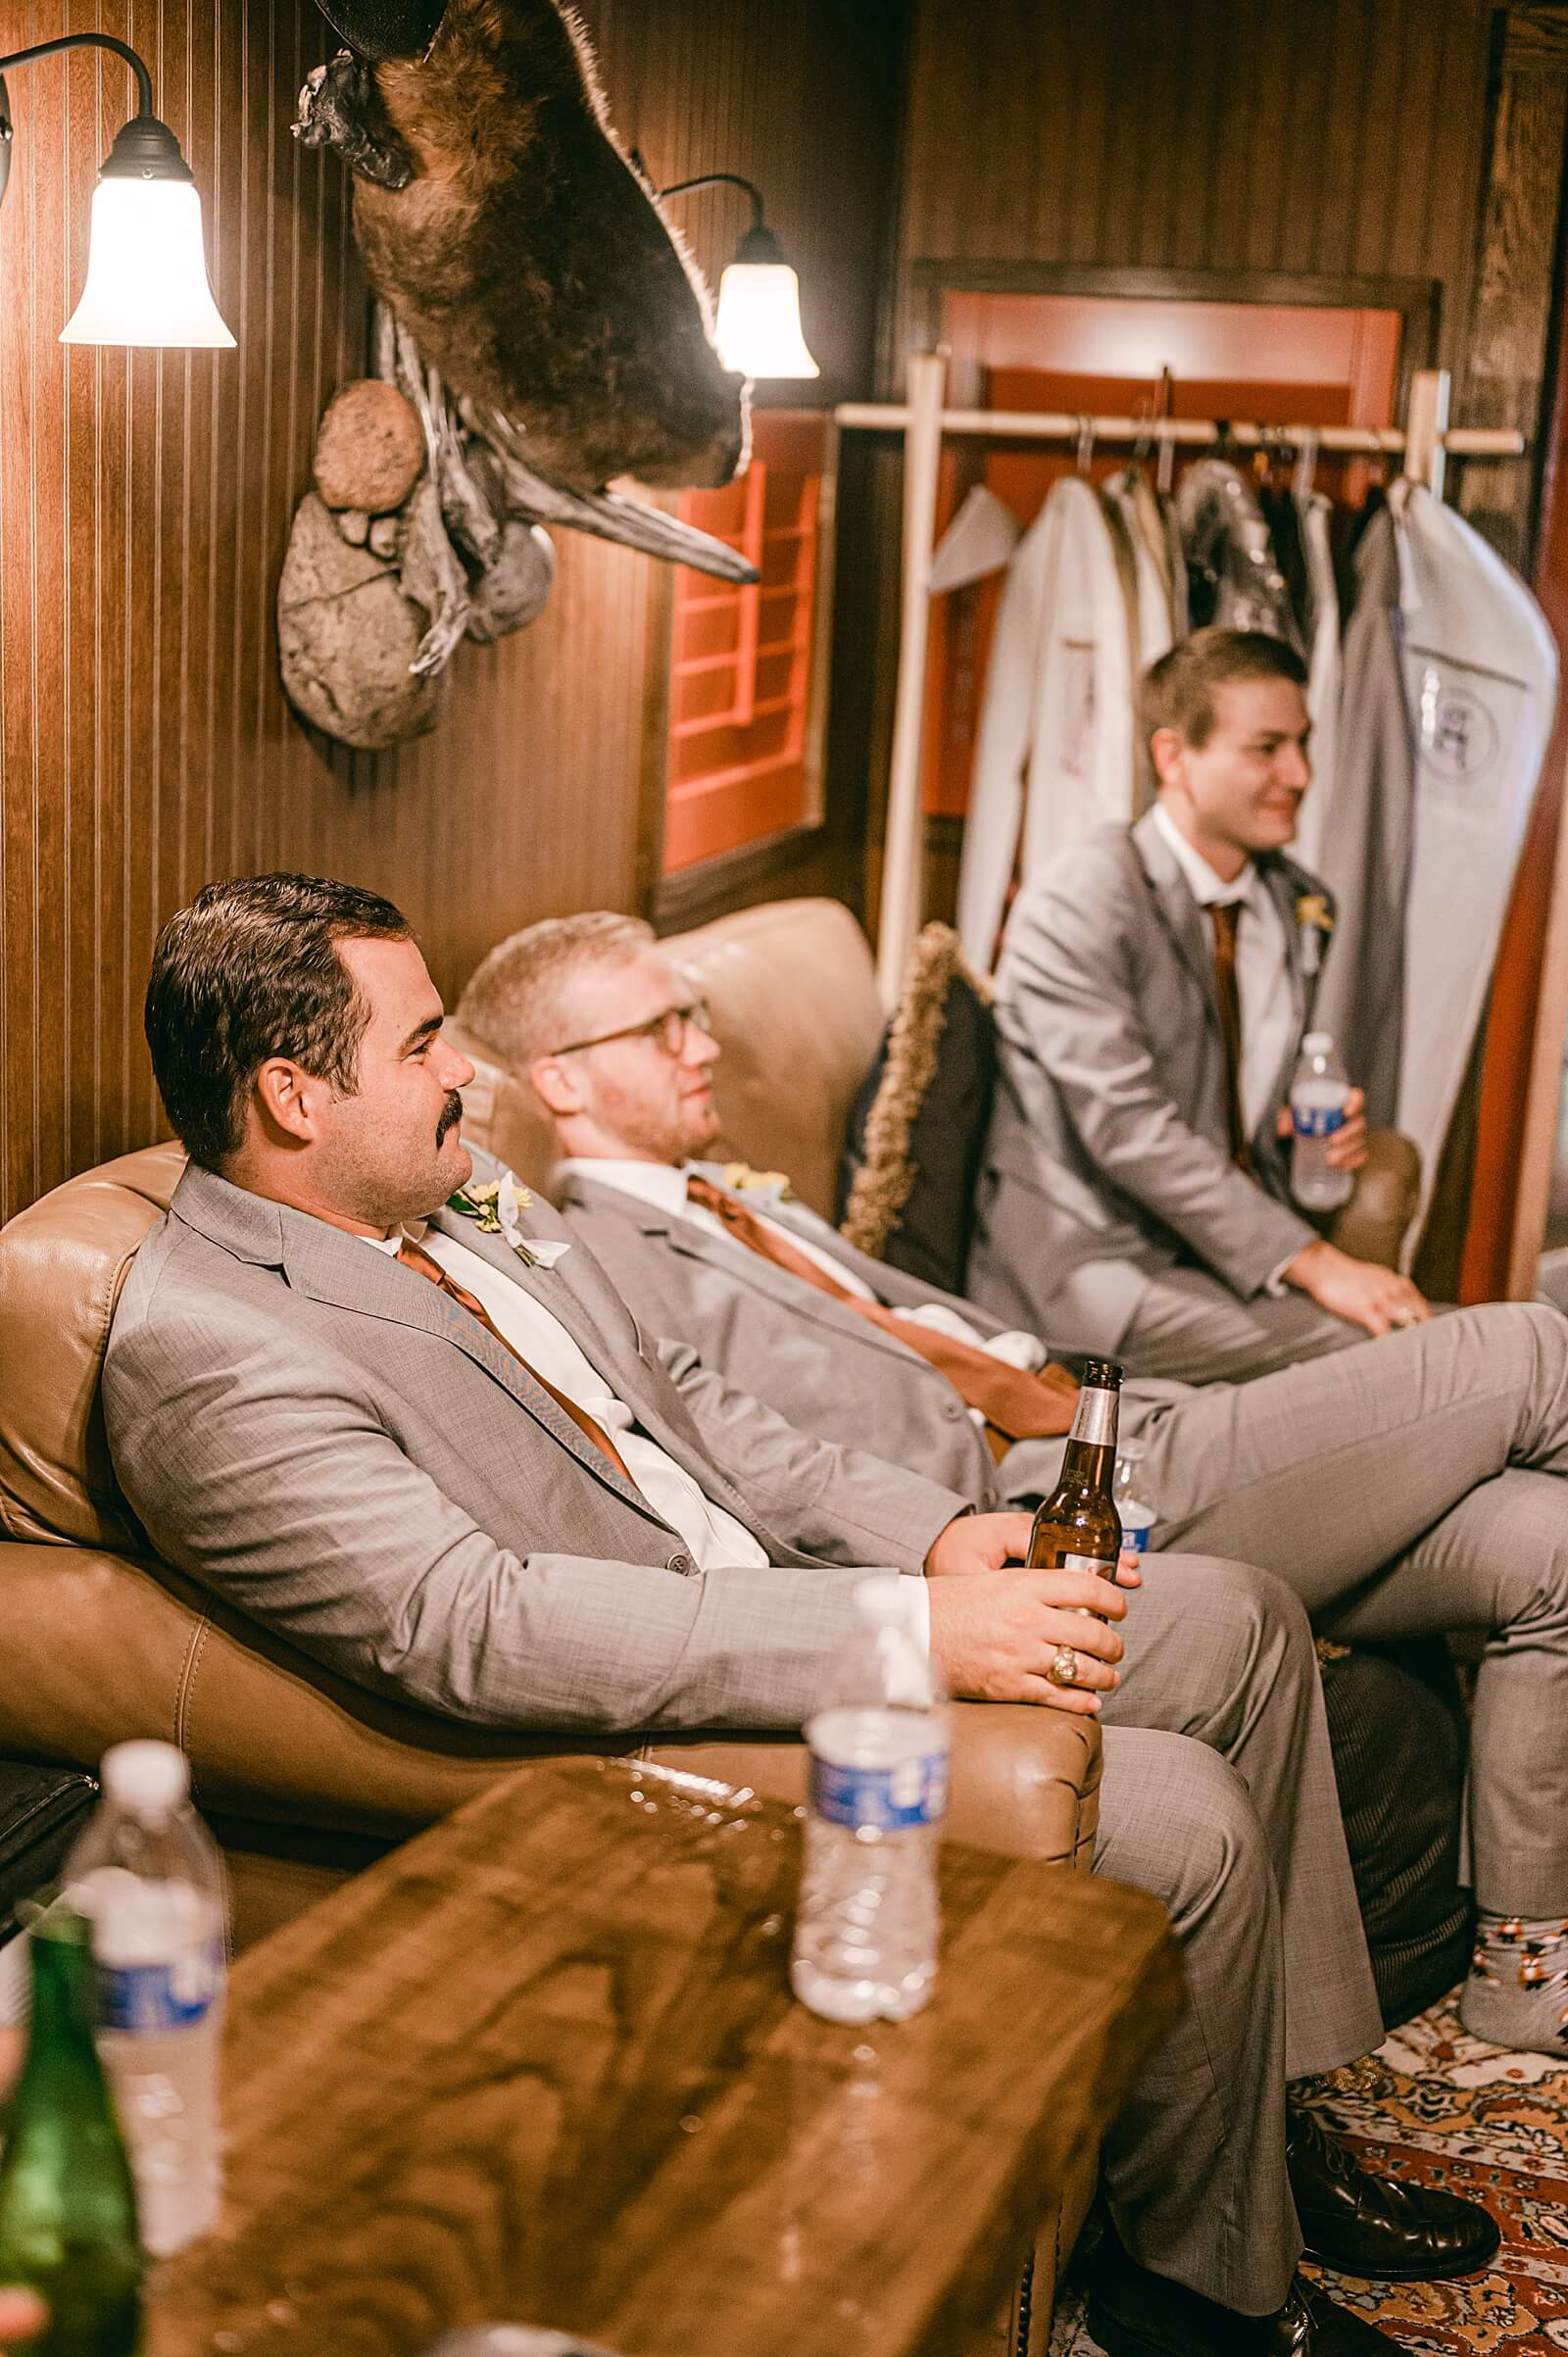 Groomsmen hang out inside groom's room at The Annex wedding venue near College Station